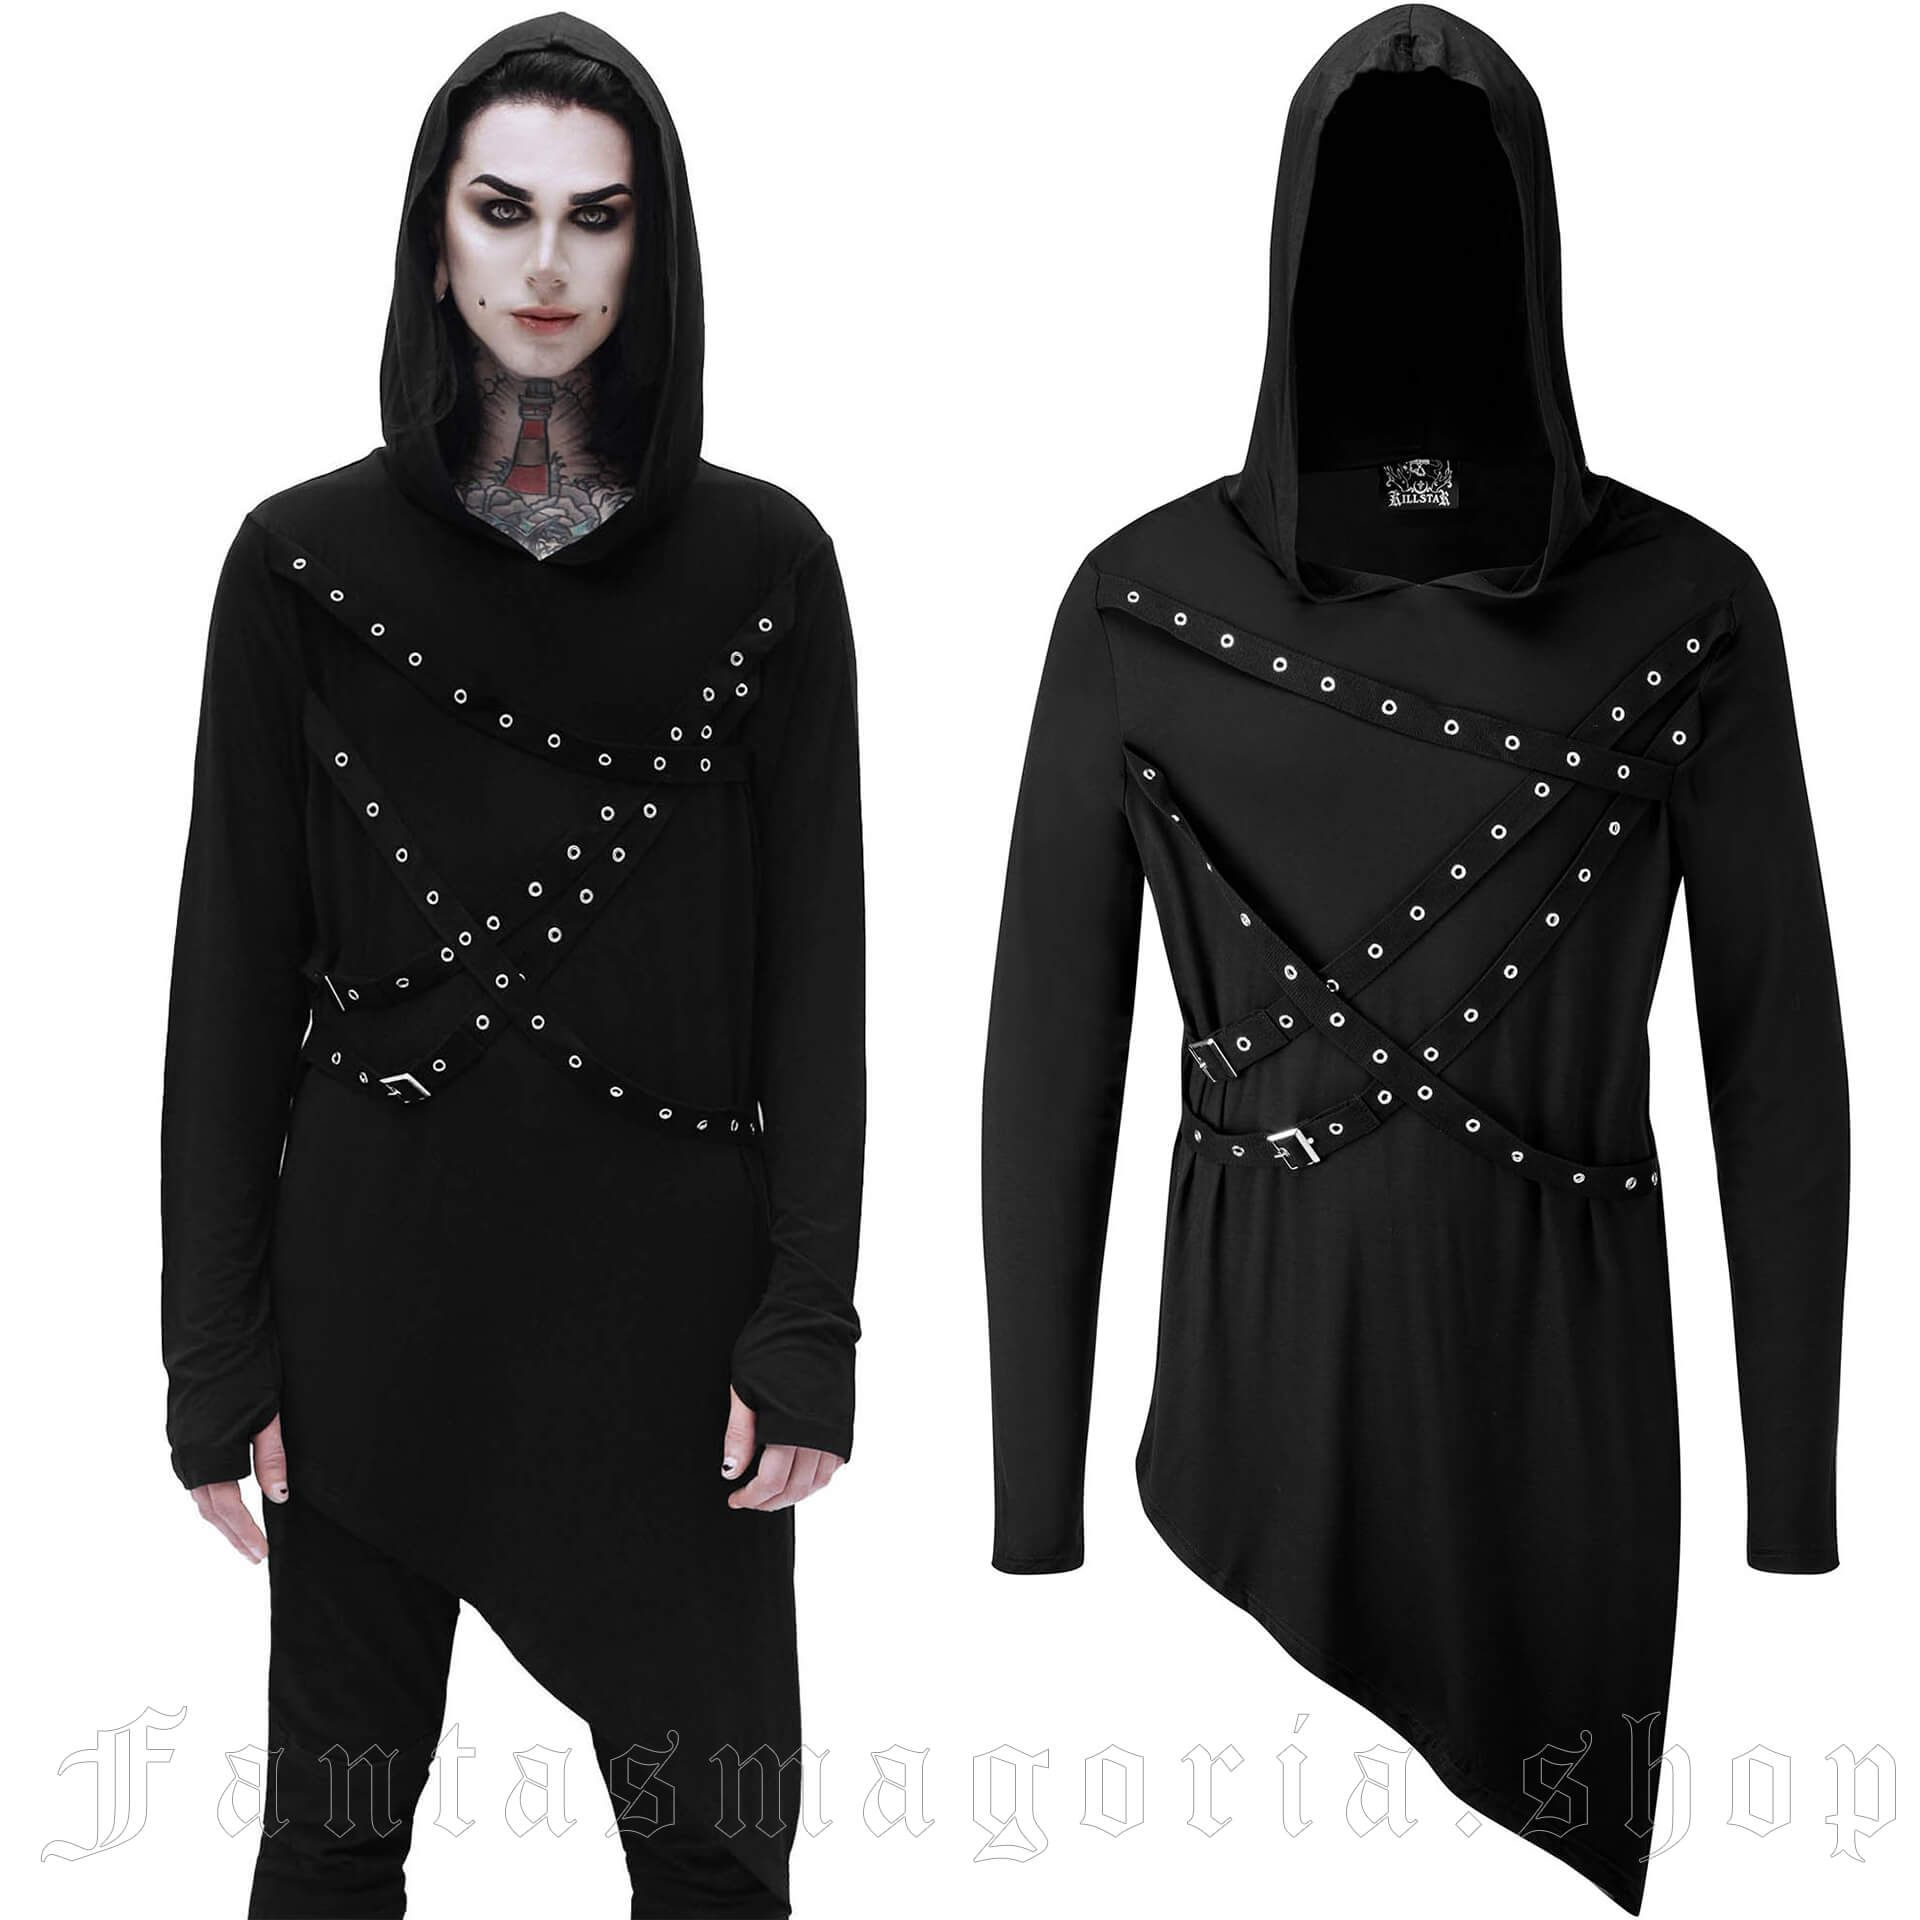 Corrosion Hooded Top